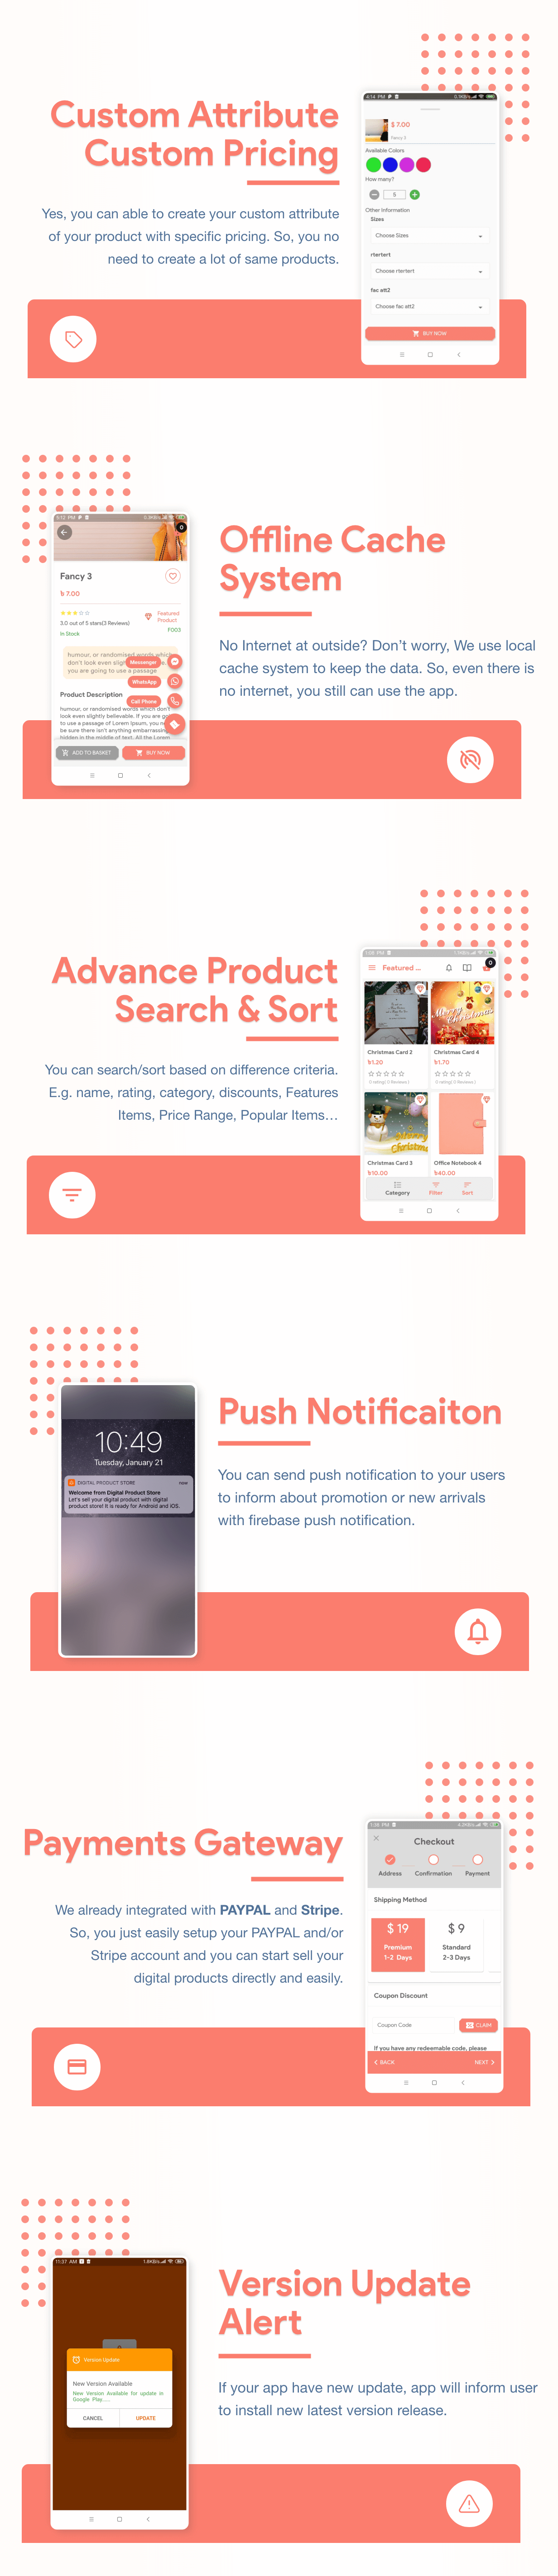 Flutter Store ( Ecommerce Mobile App for iOS & Android with same backend ) 1.7 - 7